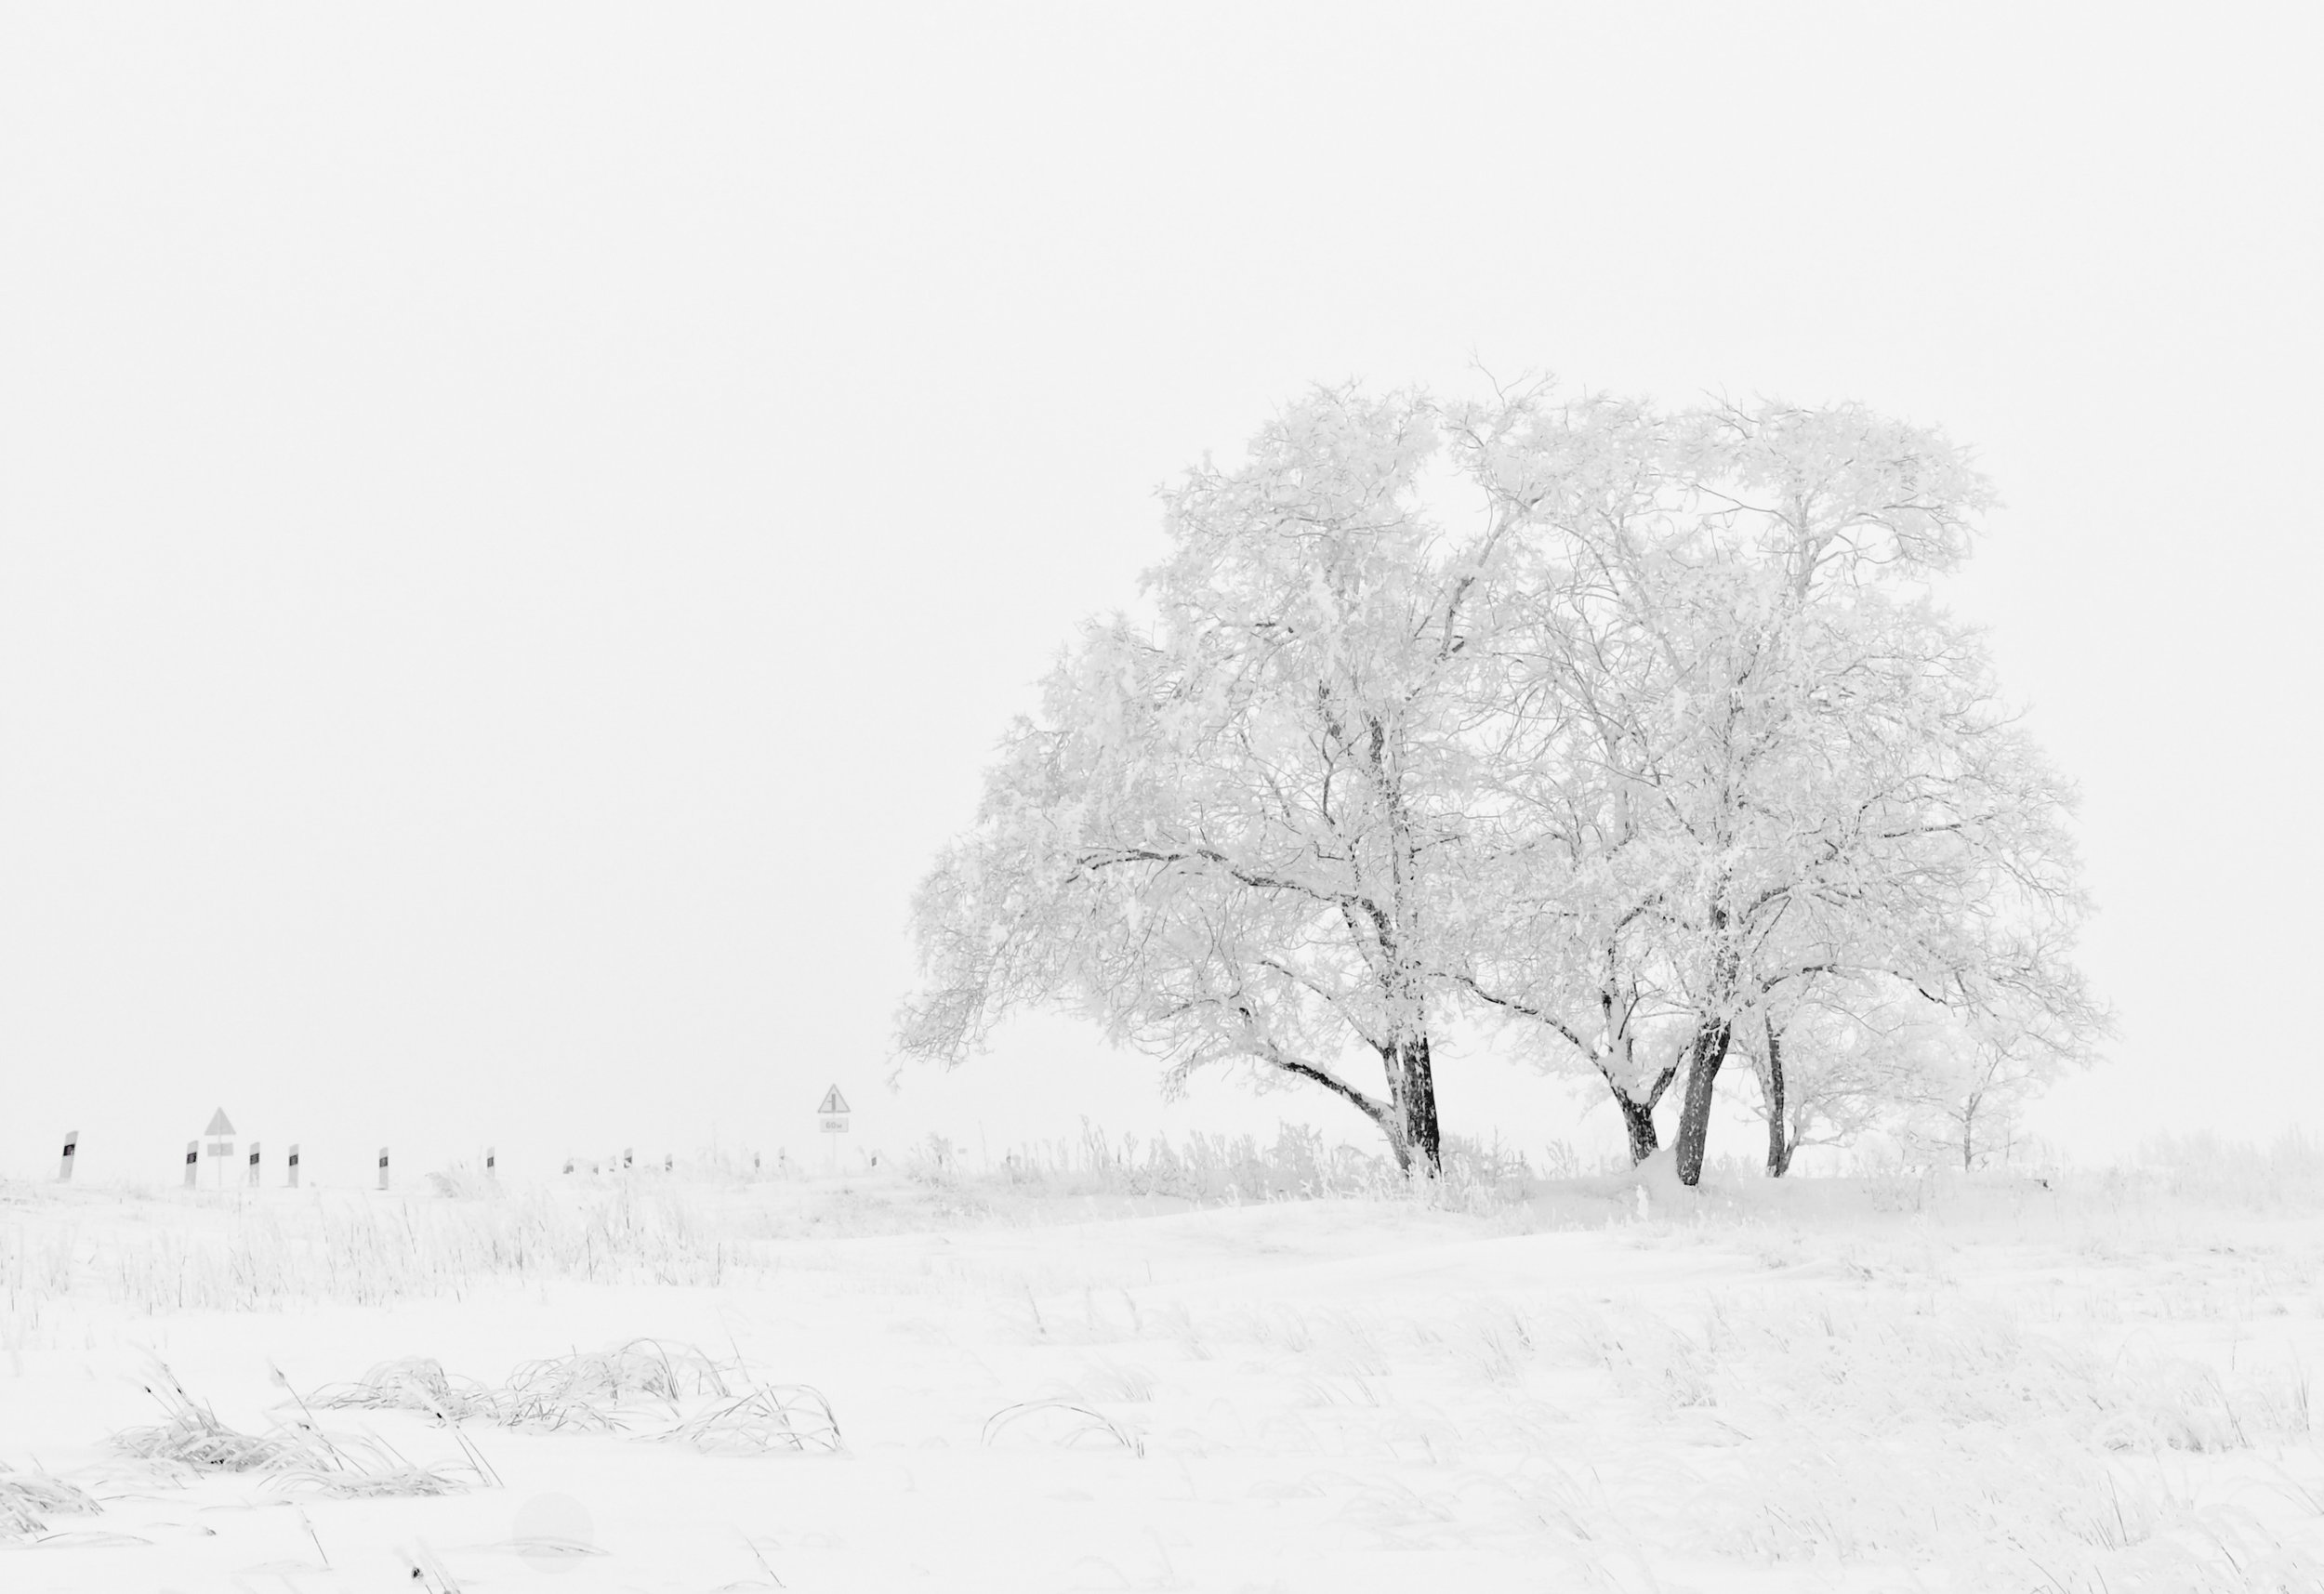 winter-nature-season-trees-66284.jpeg